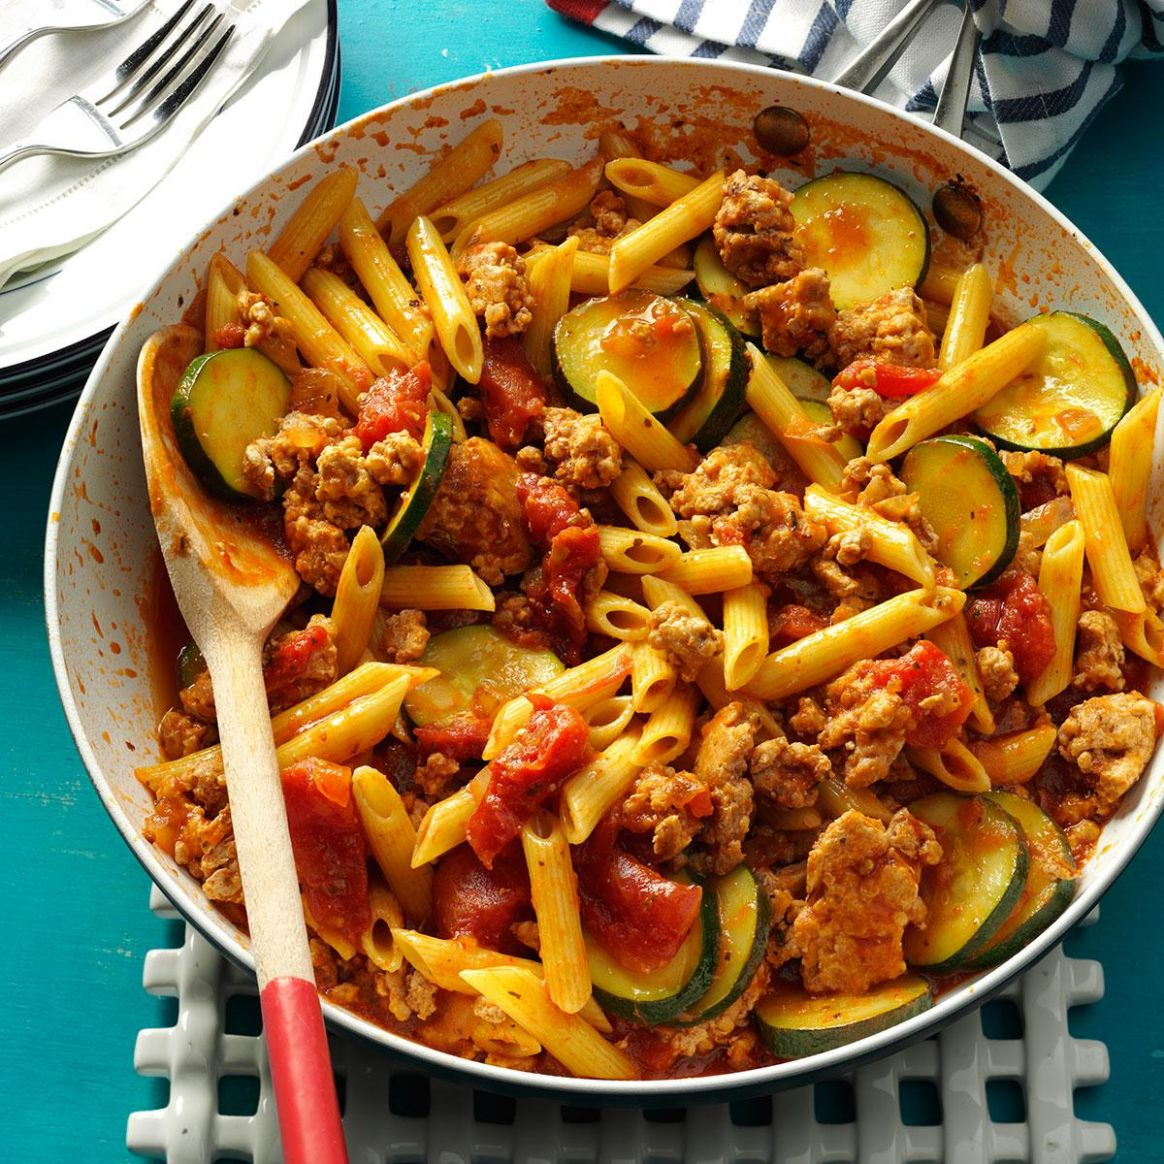 Jiffy Ground Pork Skillet